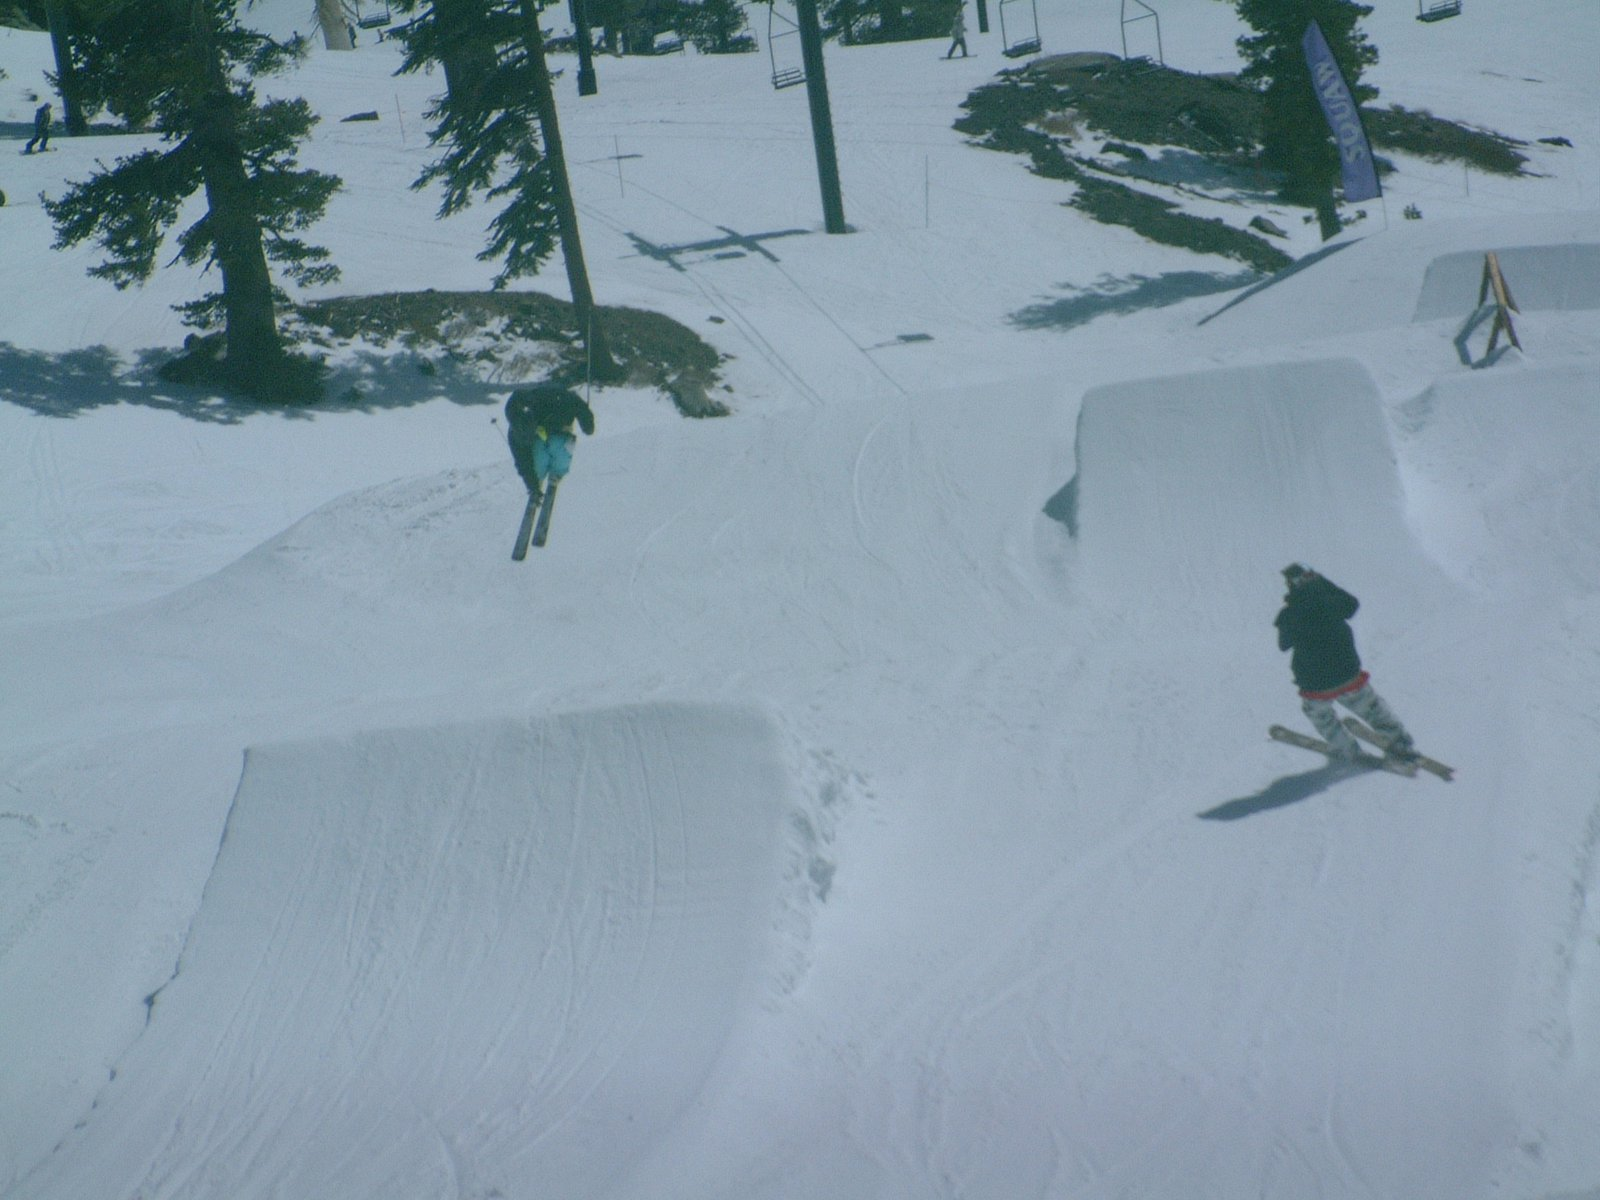 Critical 3 at Squaw